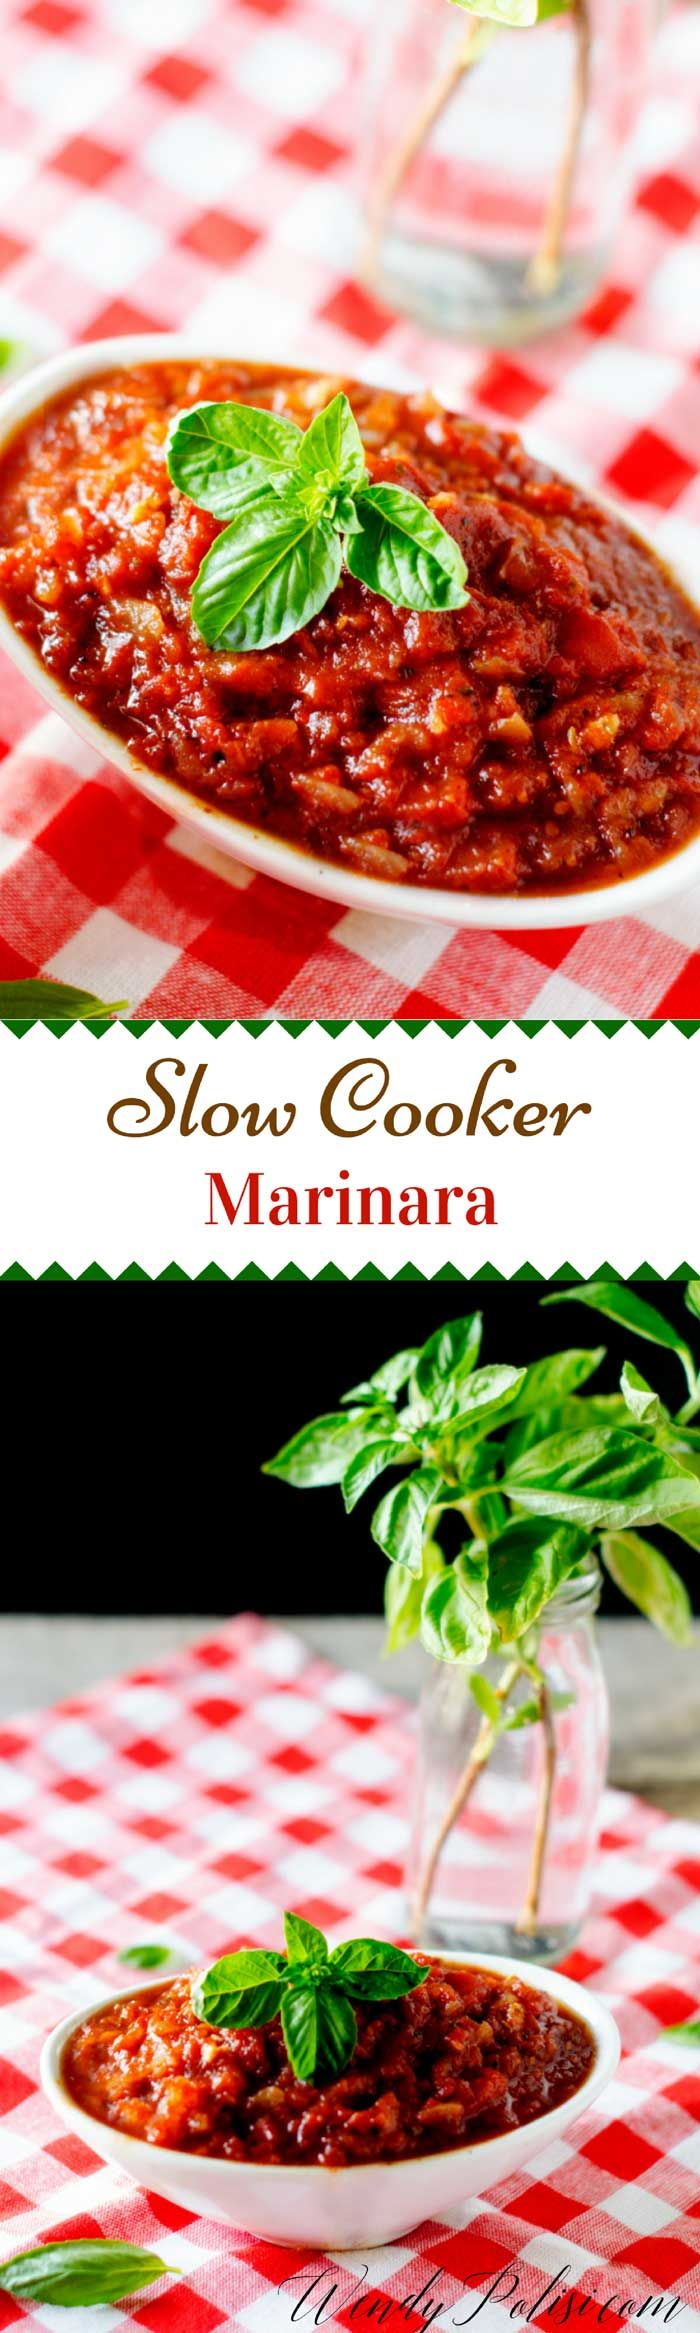 This is simply the best Slow Cooker Marinara!  It is perfect for an easy meal at the end of a busy day.  You can also freeze it to have it on hand when you need it. via @wendypolisi